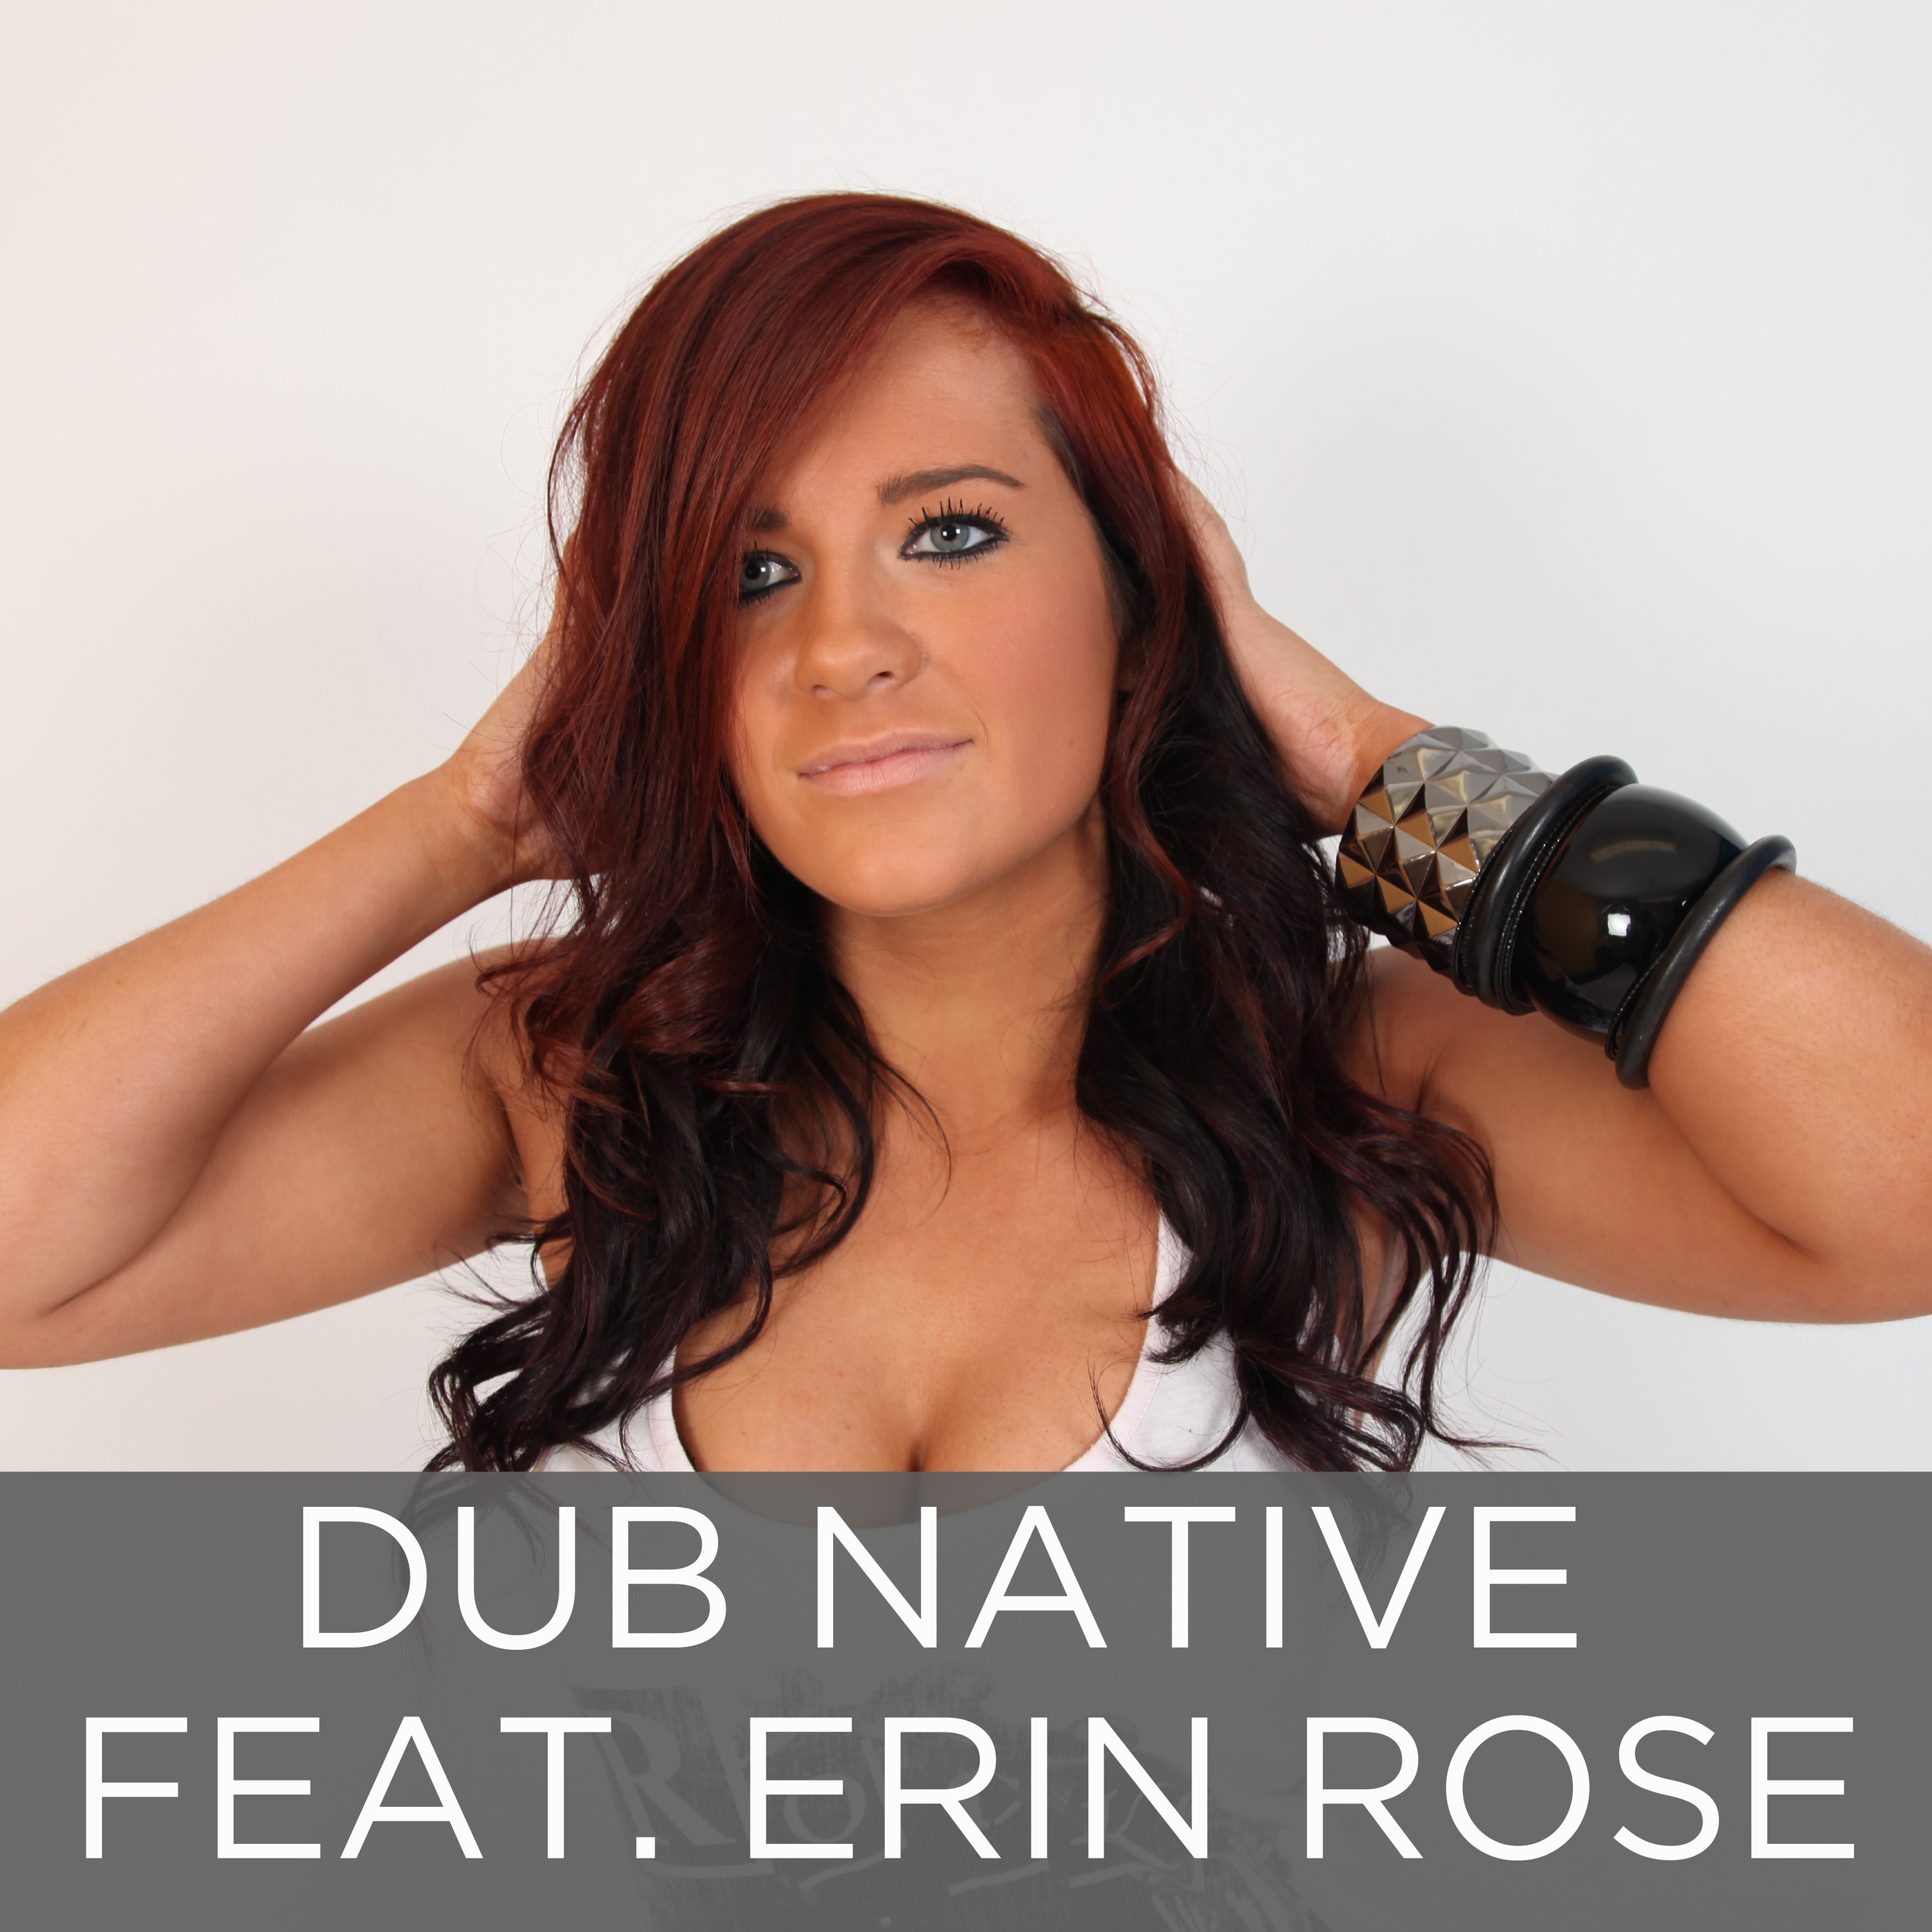 Dub Native Feat. Erin Rose